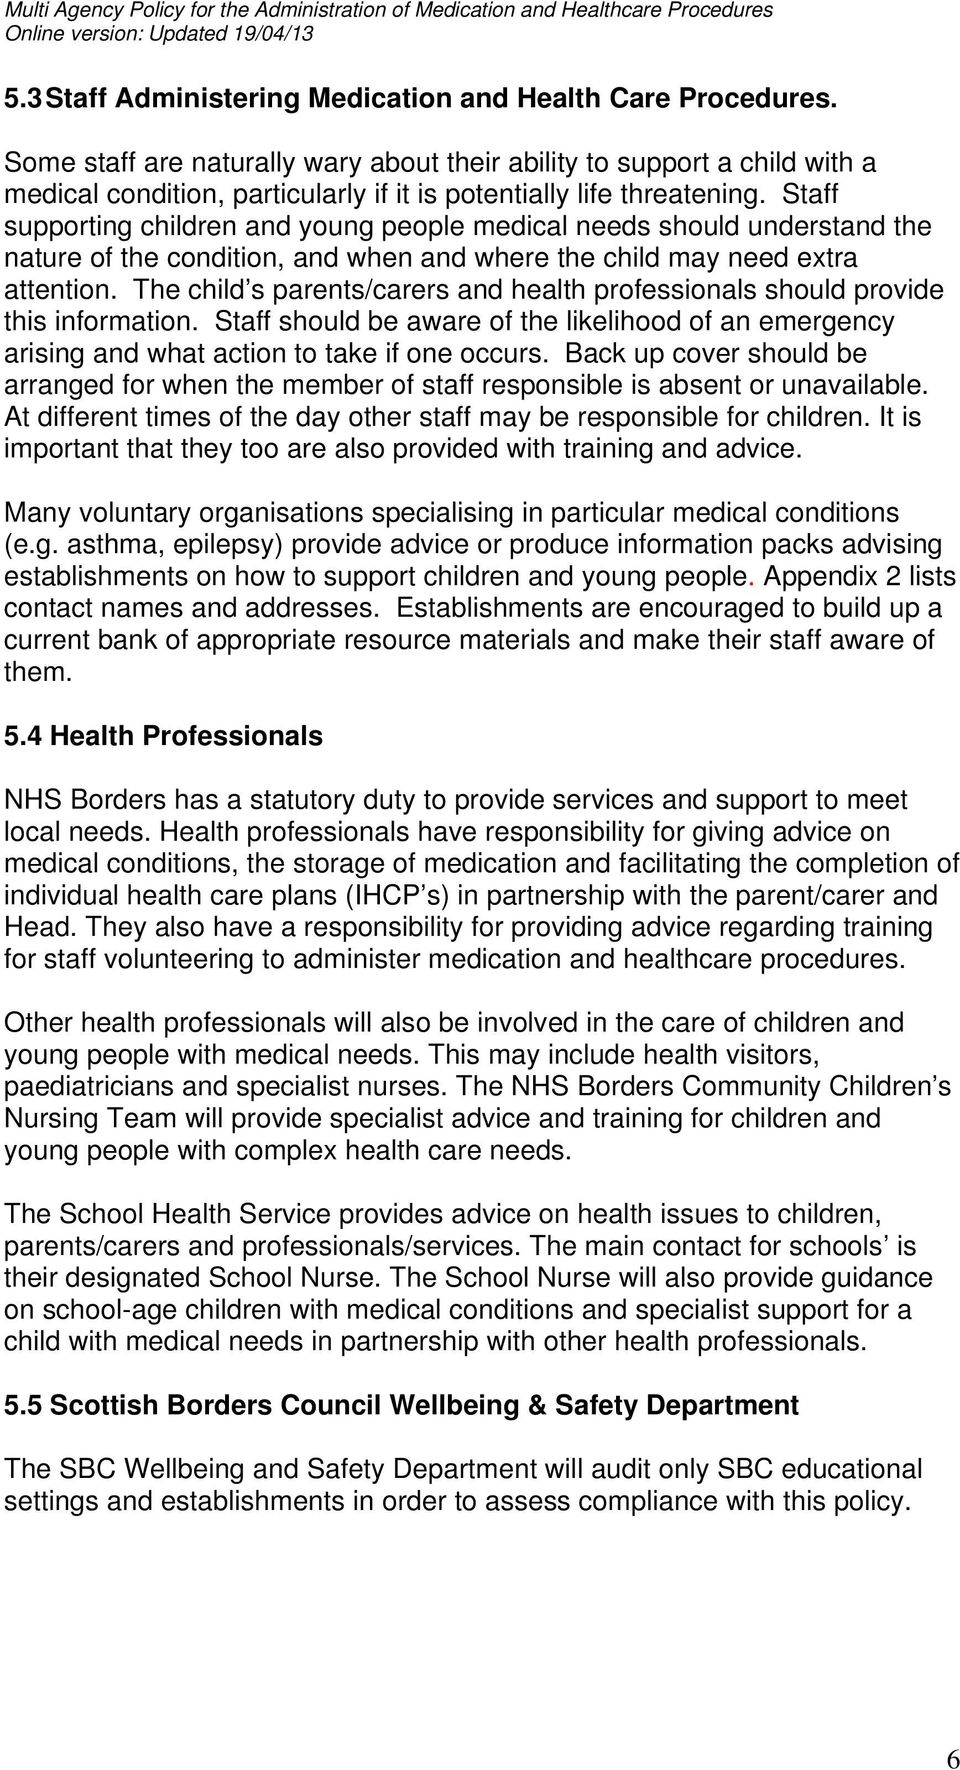 Staff supporting children and young people medical needs should understand the nature of the condition, and when and where the child may need extra attention.